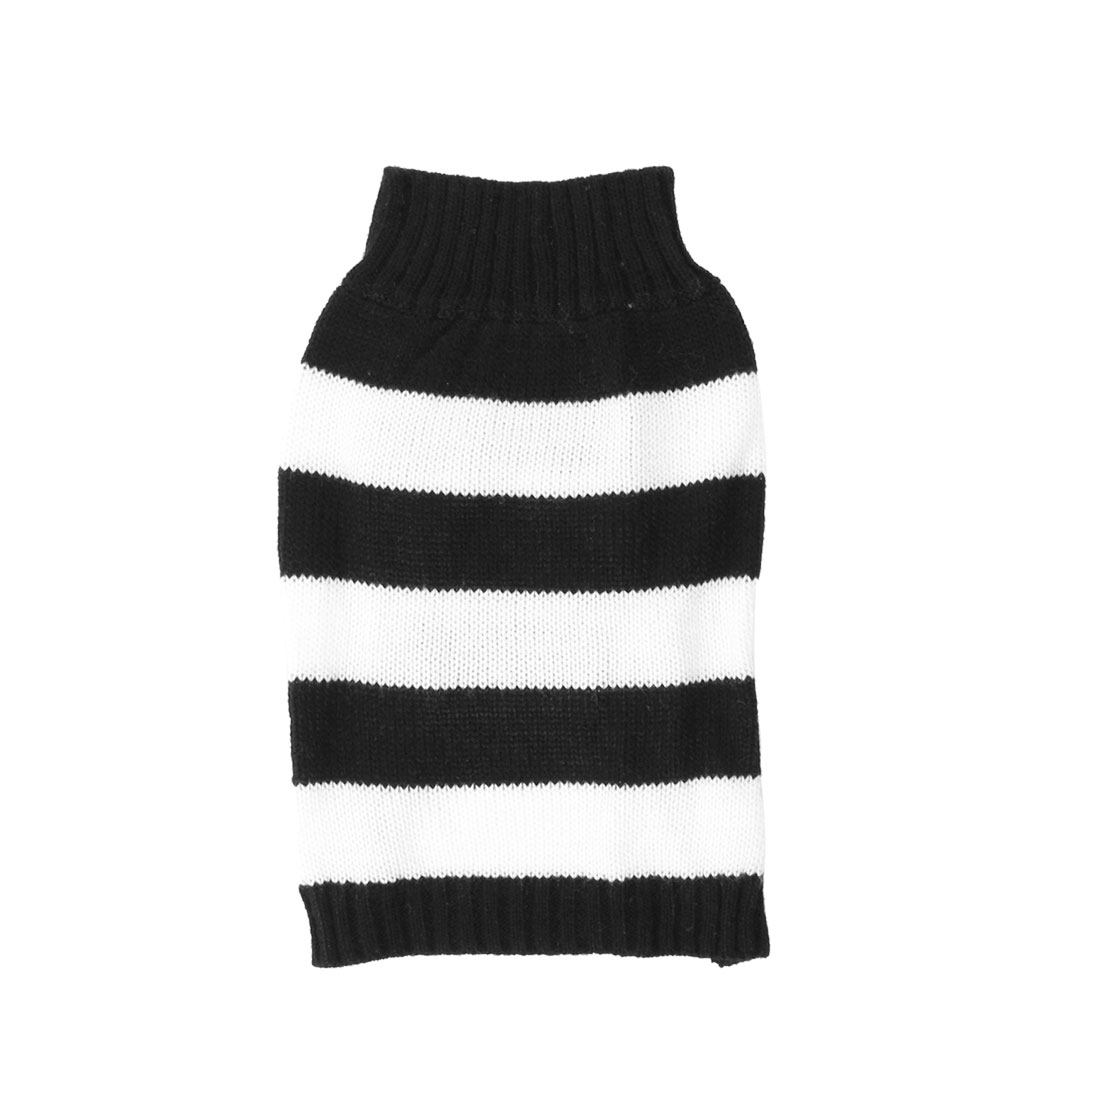 Stand Collar Stripe Printed Pet Dog Puppy Knitting Clothes Sweater Black White S